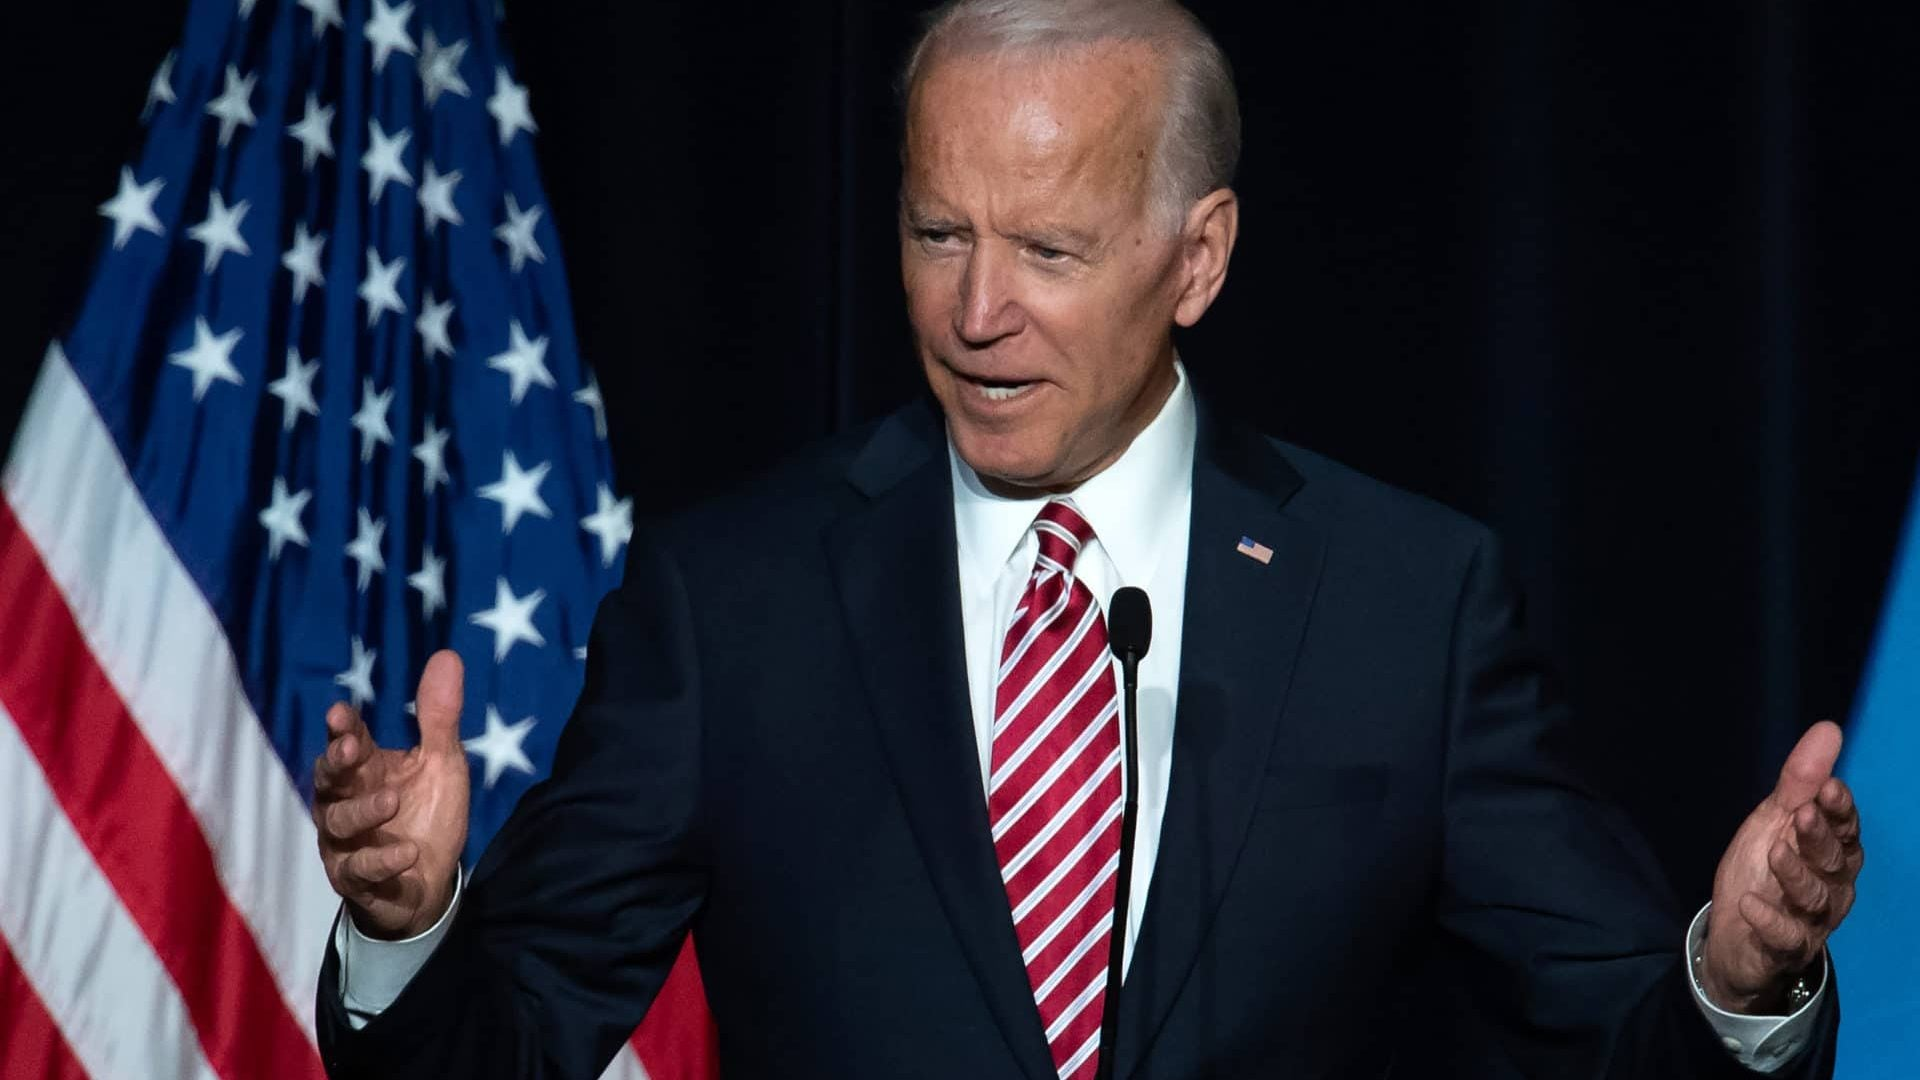 Biden Tells NAACP His Civil Rights Record Passed Obama's Scrutiny